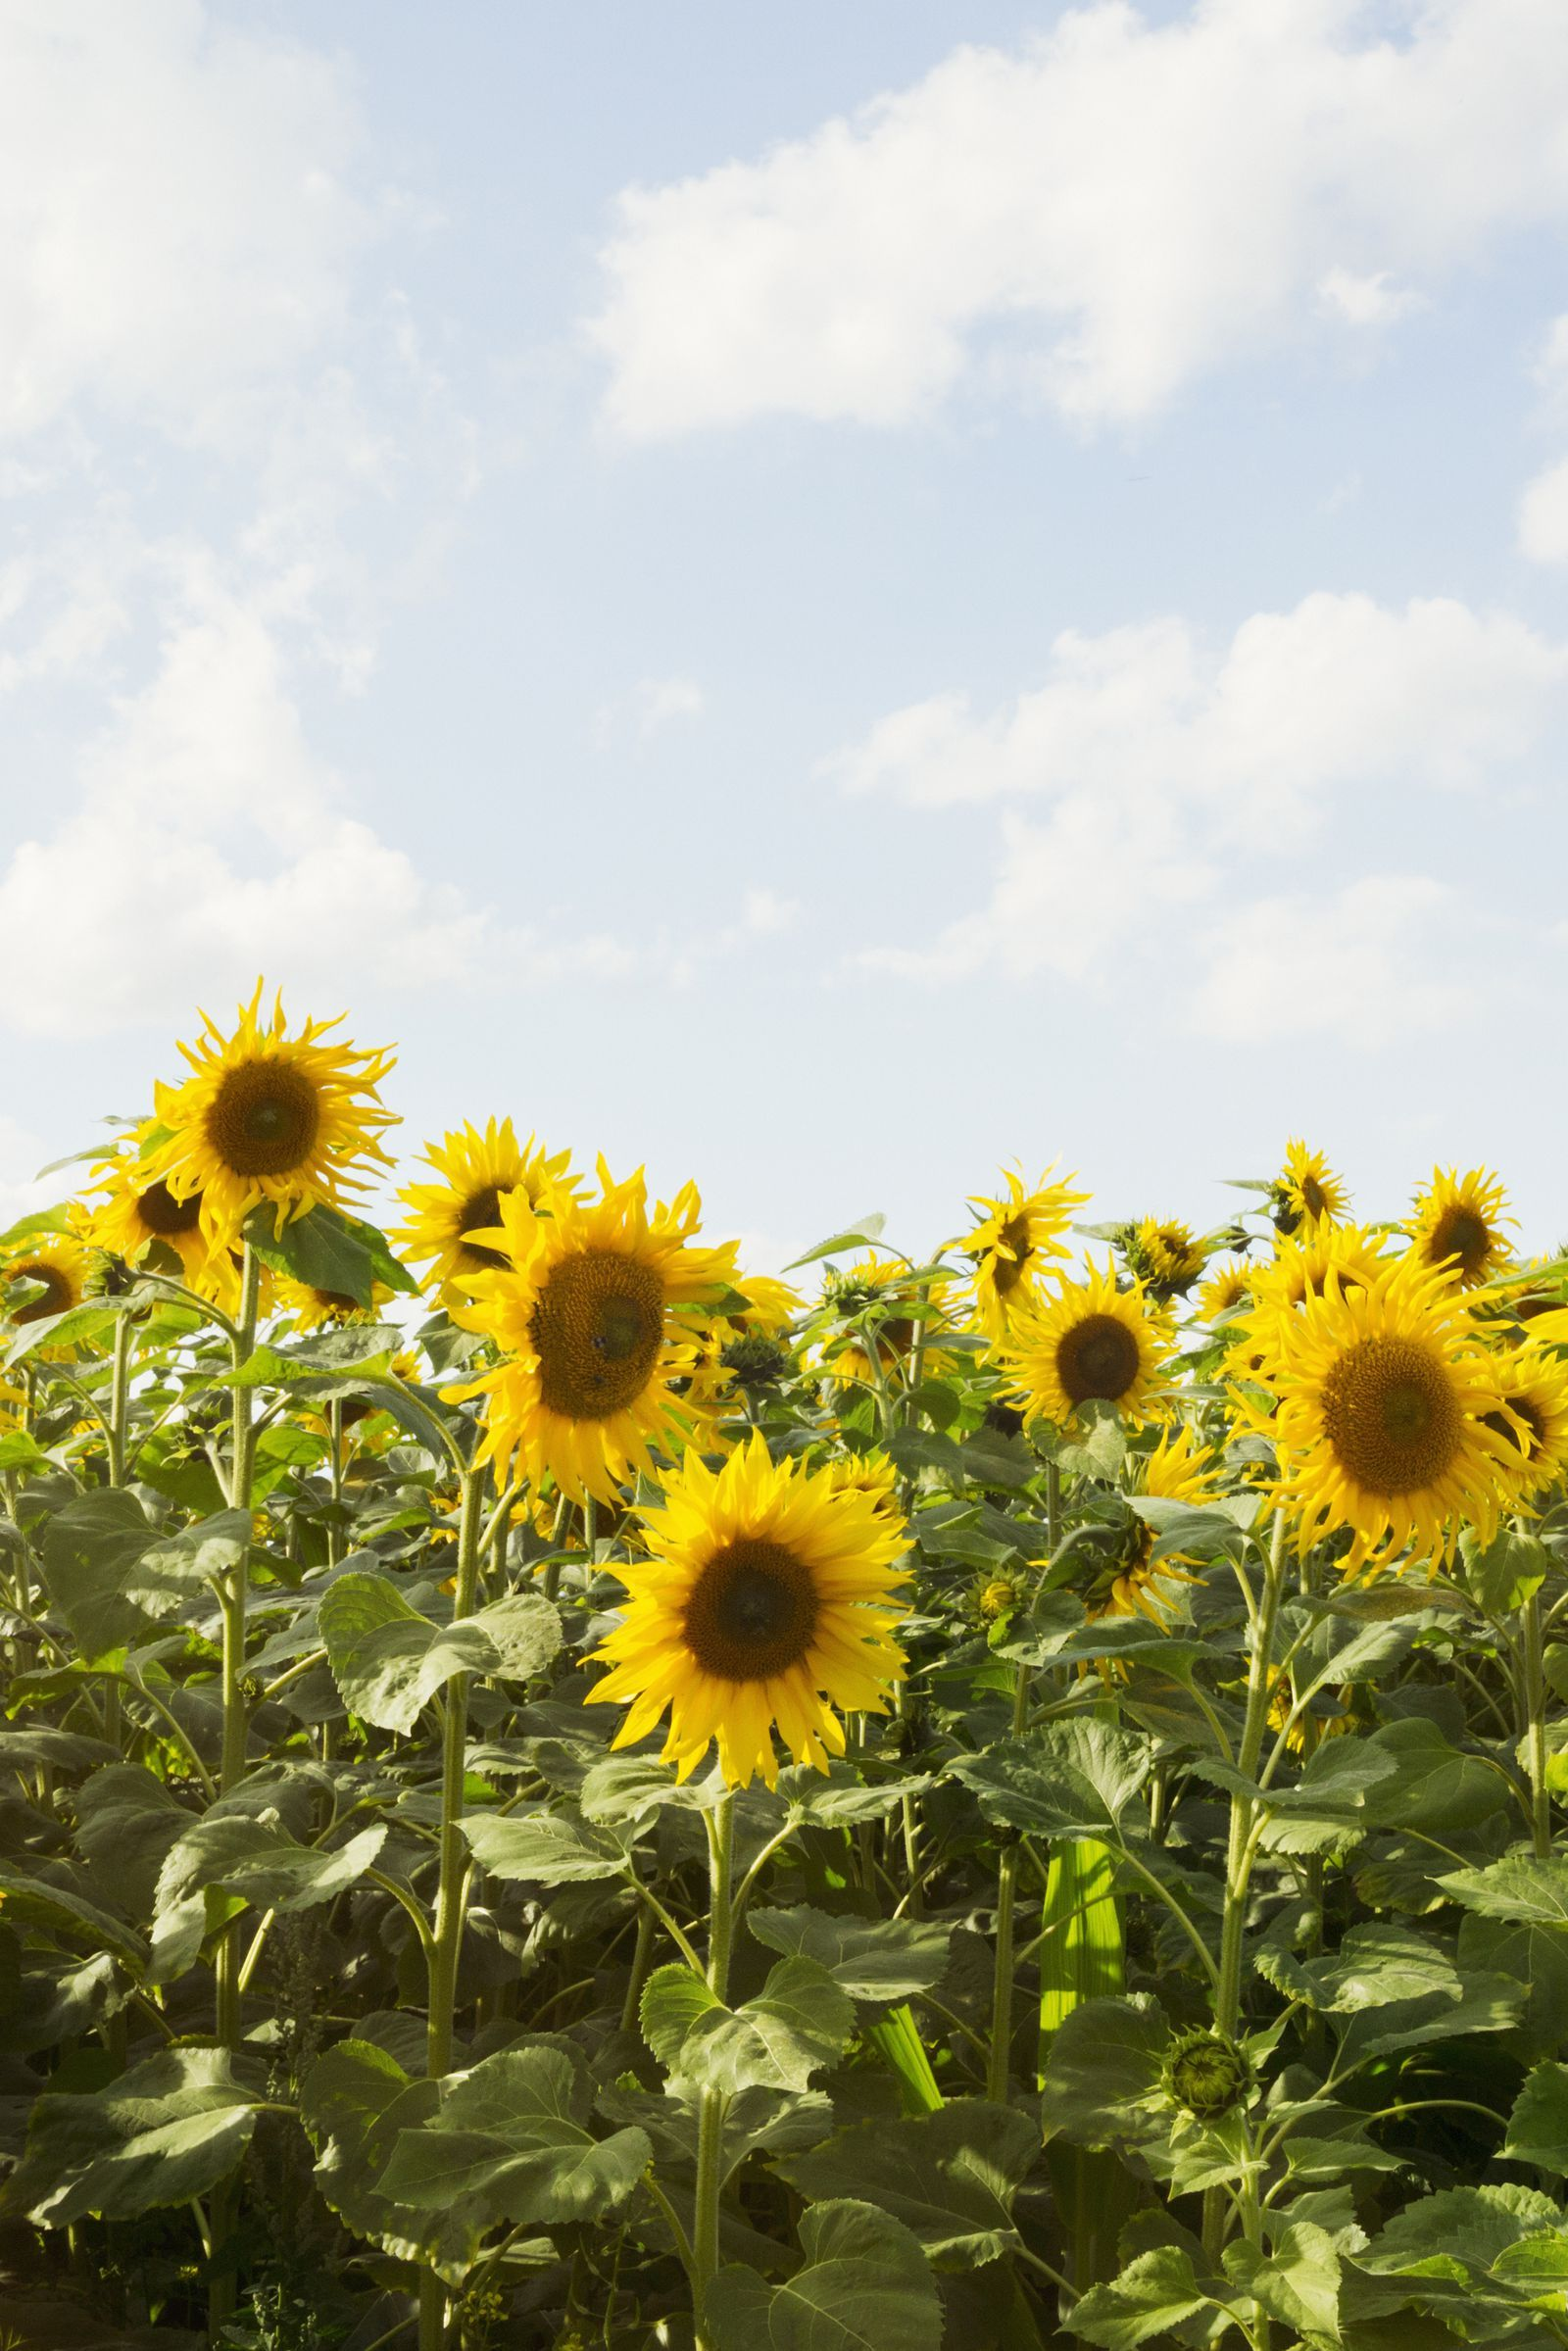 The 30 Prettiest Sunflower Fields Across the U.S